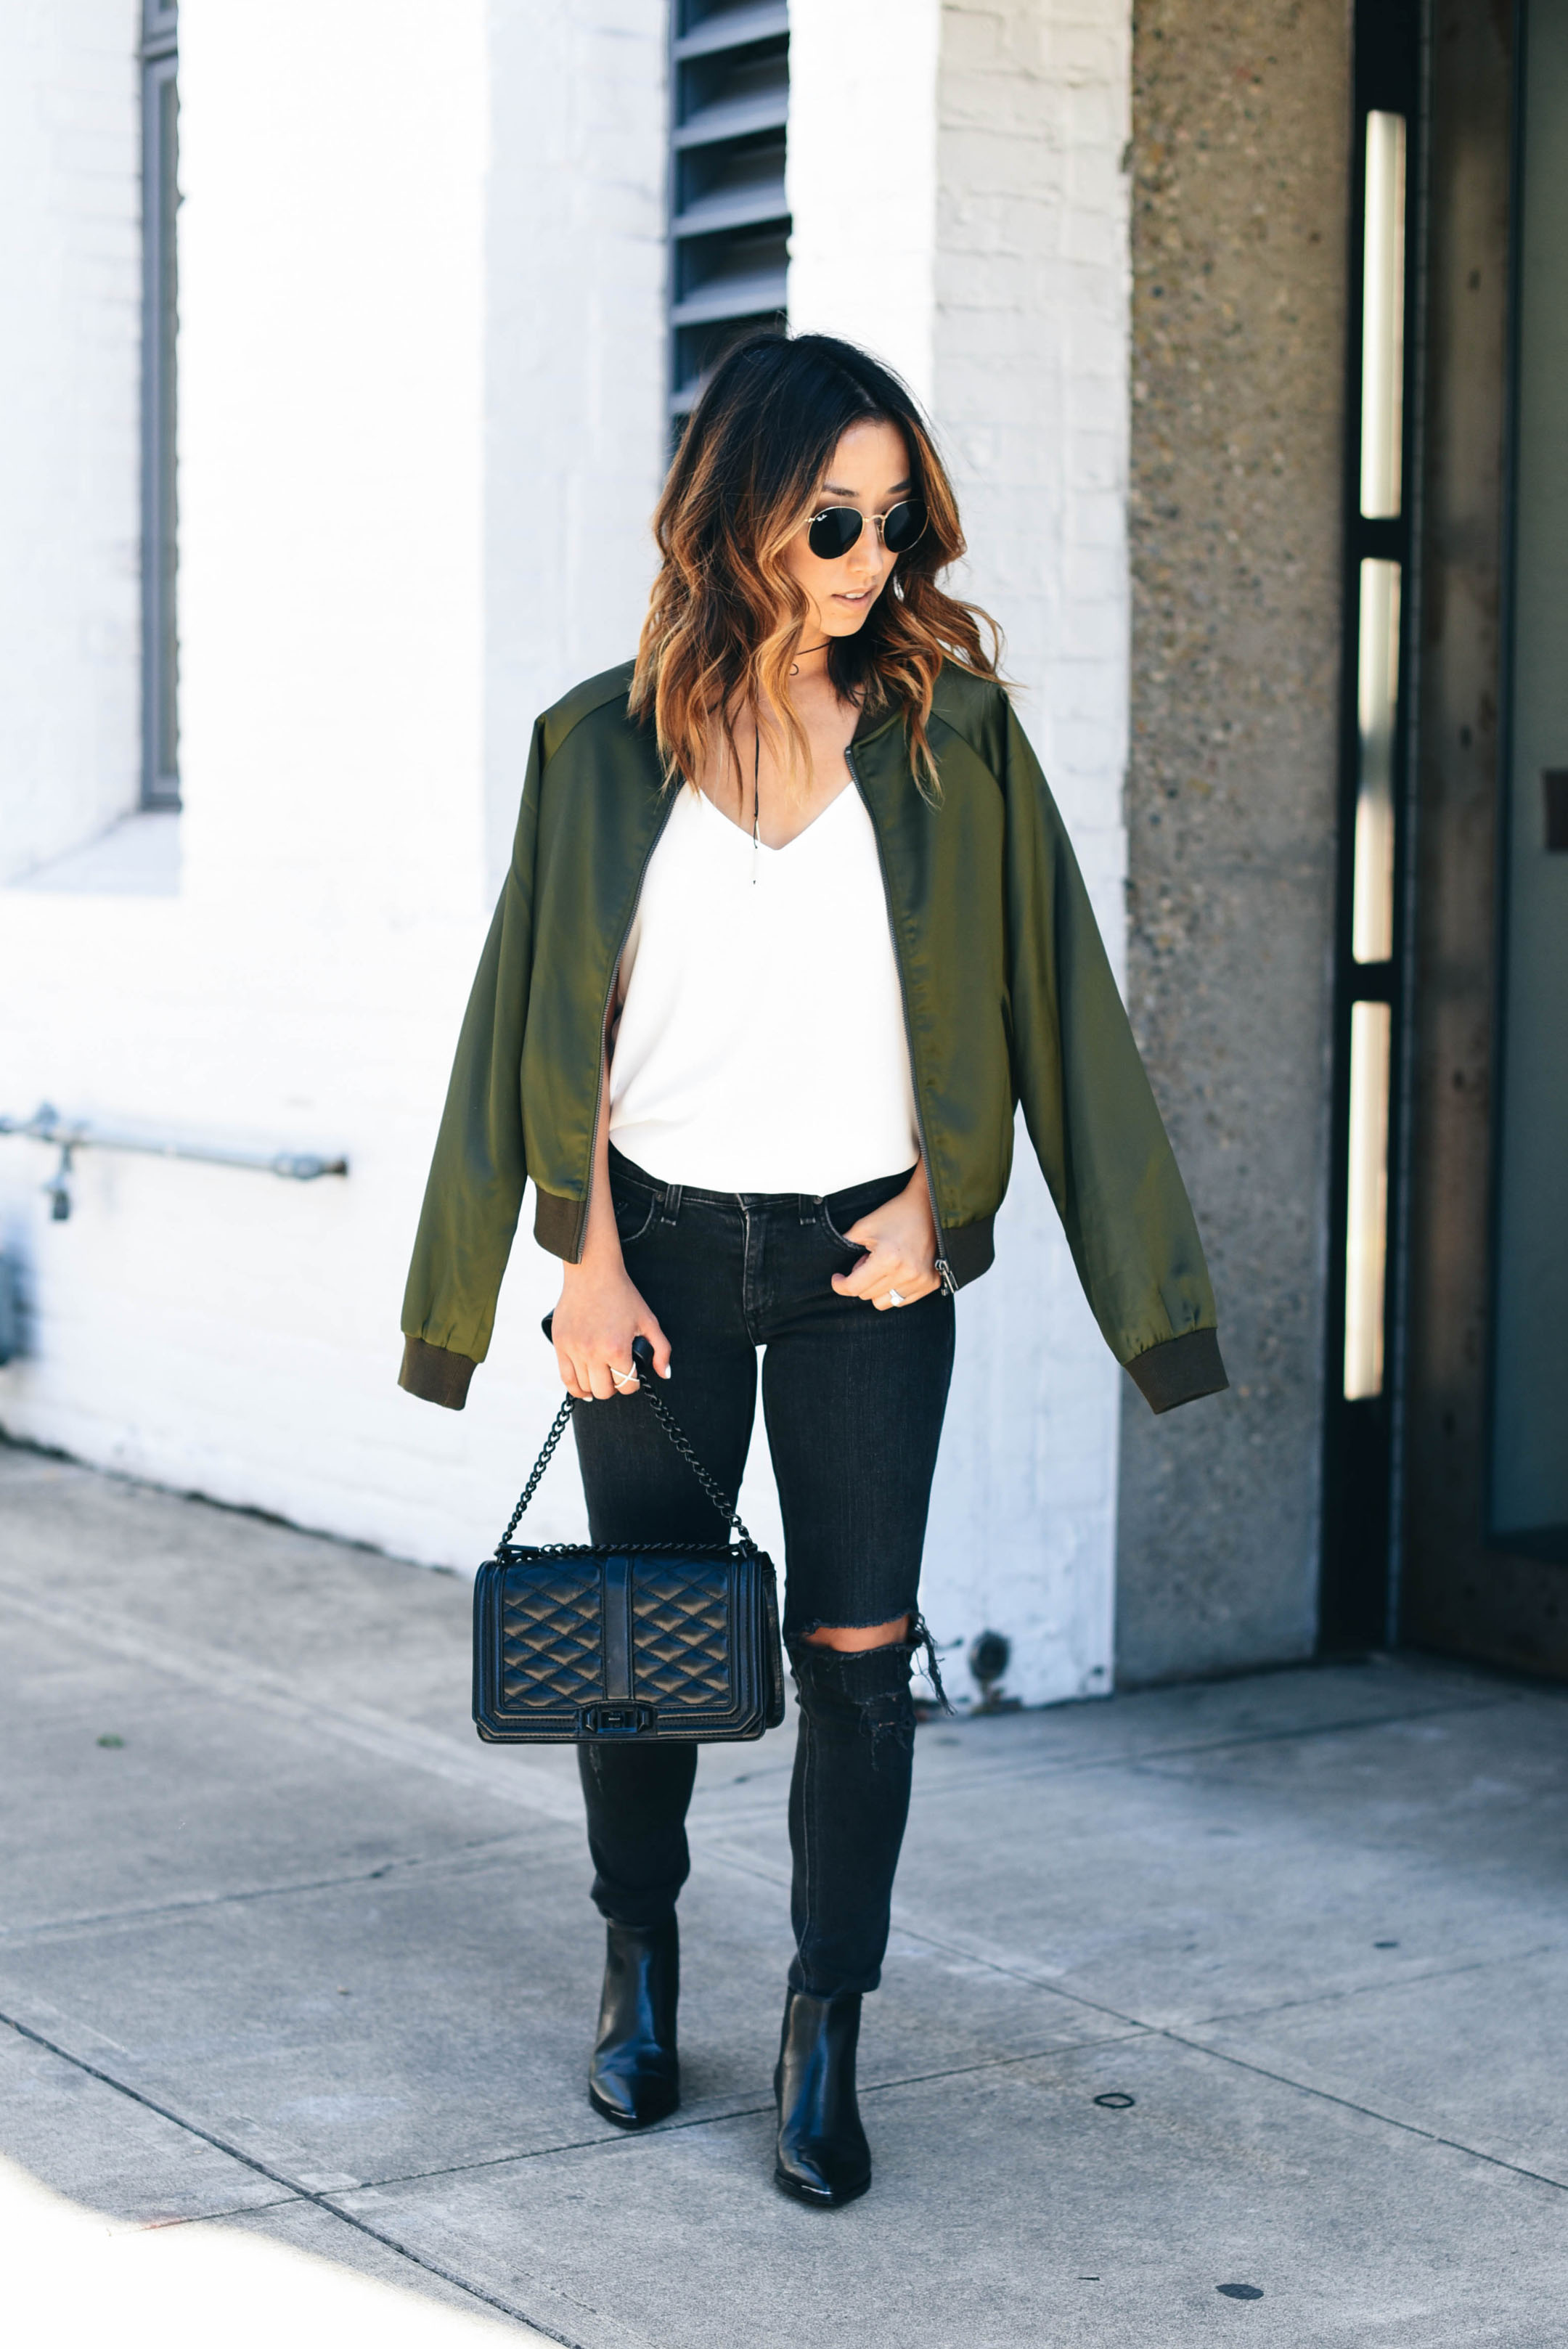 How to style a bomber jacket 2